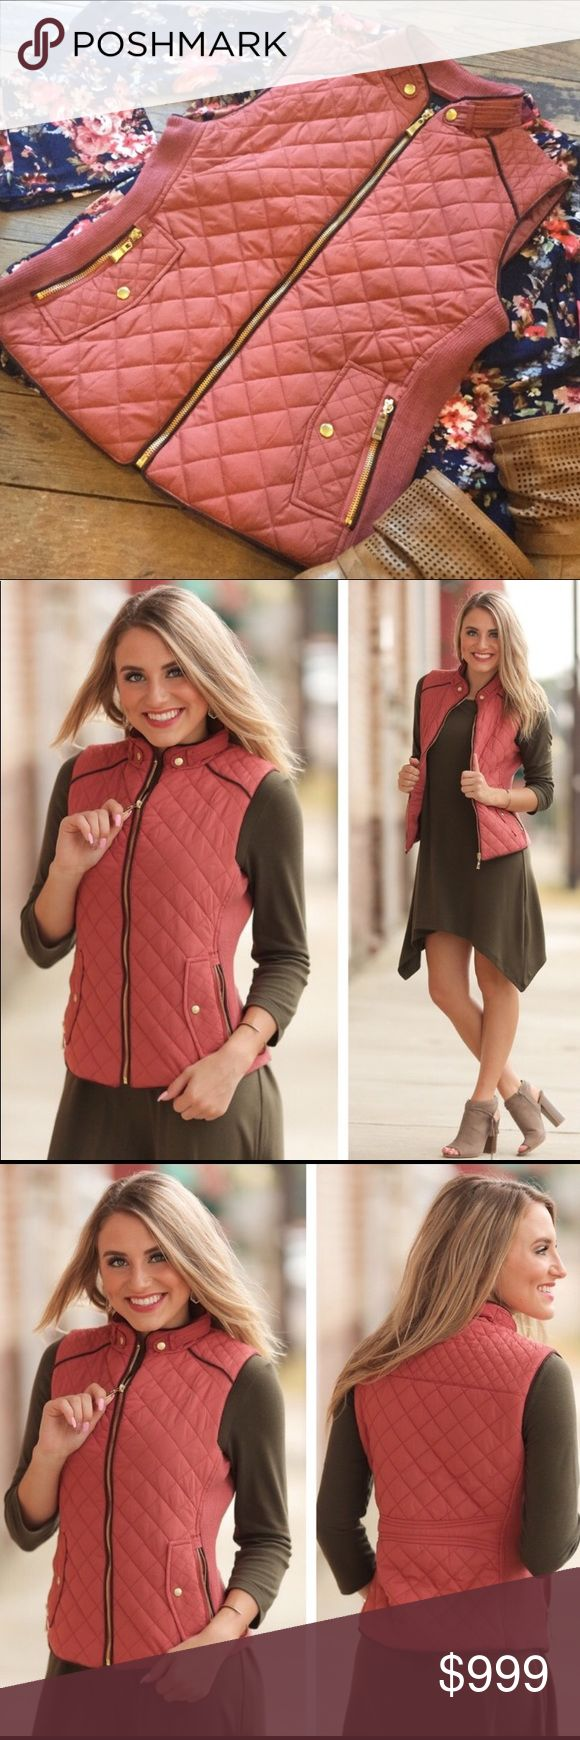 """🎉🎉🎉COMING SOON!🎉🎉🎉 Marsala Quilted Vest With Gold Hardware   100% Polyester  Bust: S-17"""" :: M-18"""" :: L-19"""" Length: S-22"""" :: M-23"""" :: L-24"""" Jackets & Coats Vests"""